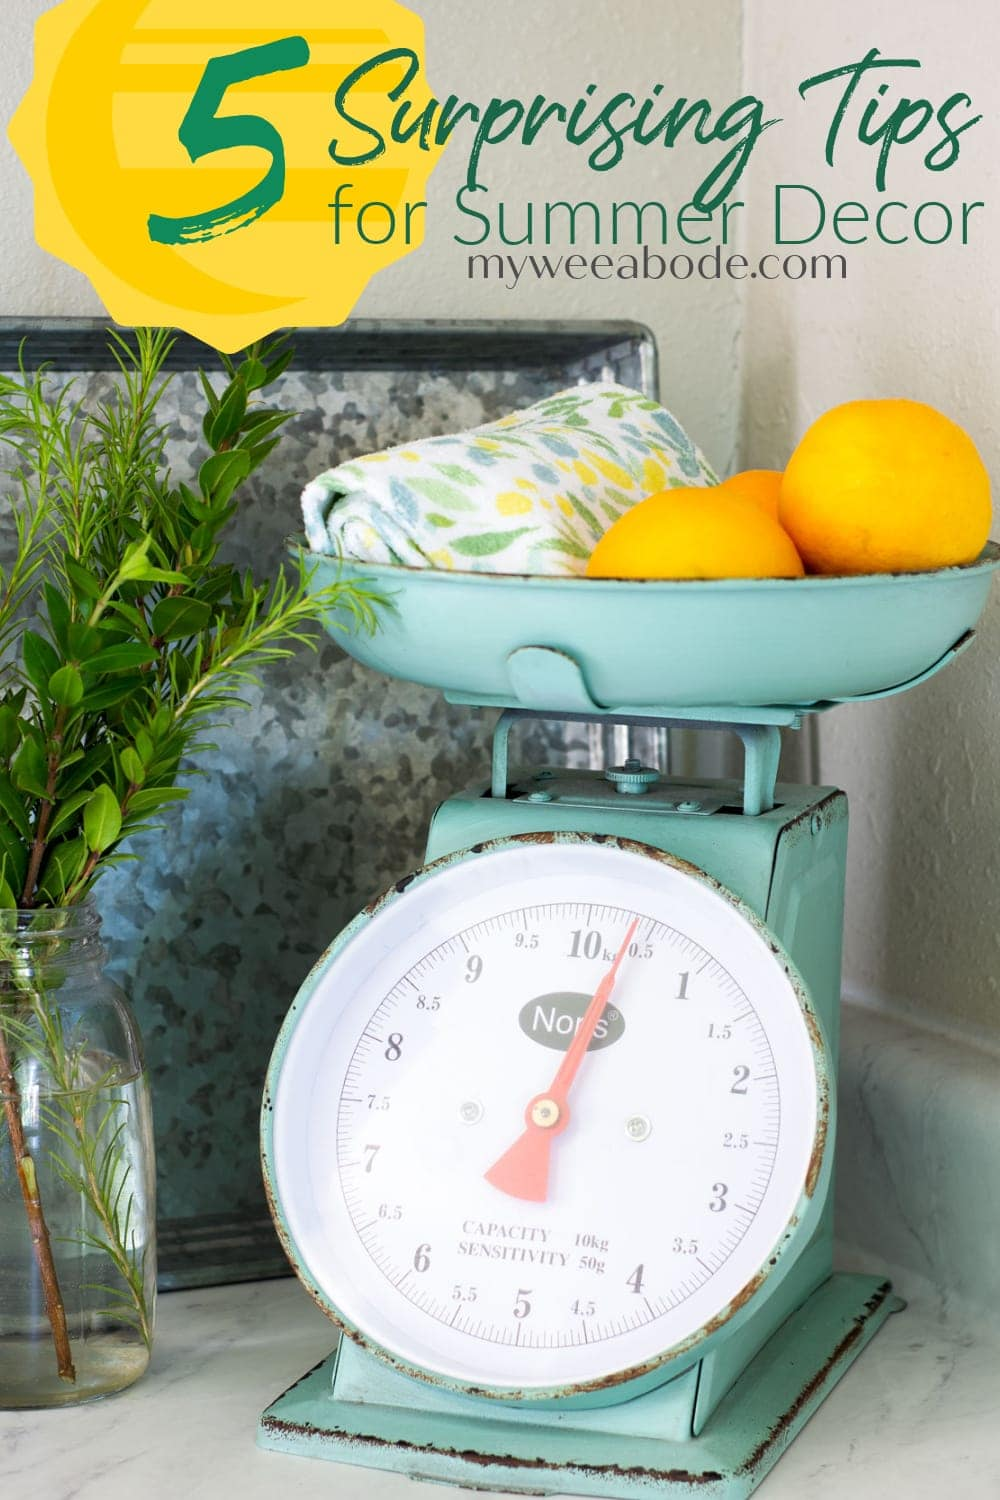 apartment summer decor tips green scale with lemons and vase with greenery on marble counter